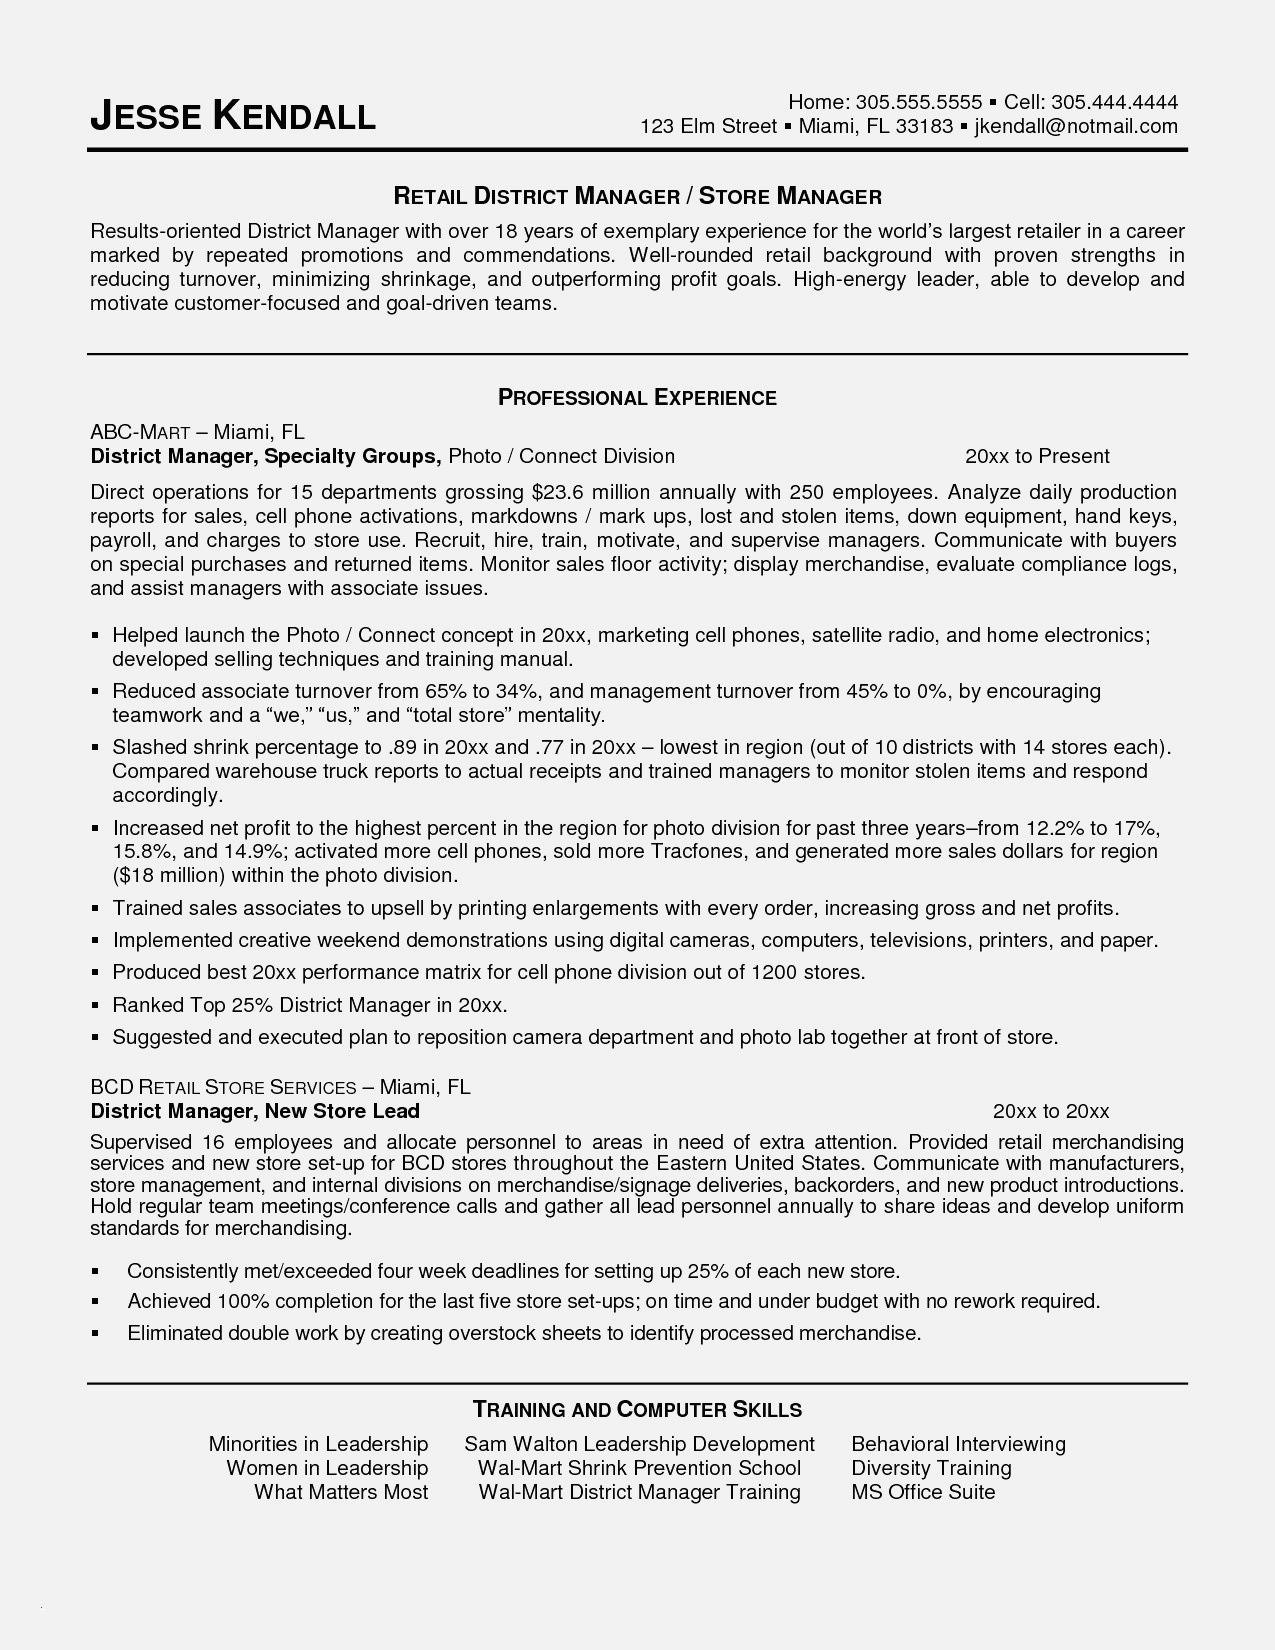 Paraprofessional Resume Template - Paraeducator Resume Sample Fresh Paraprofessional Resume Sample